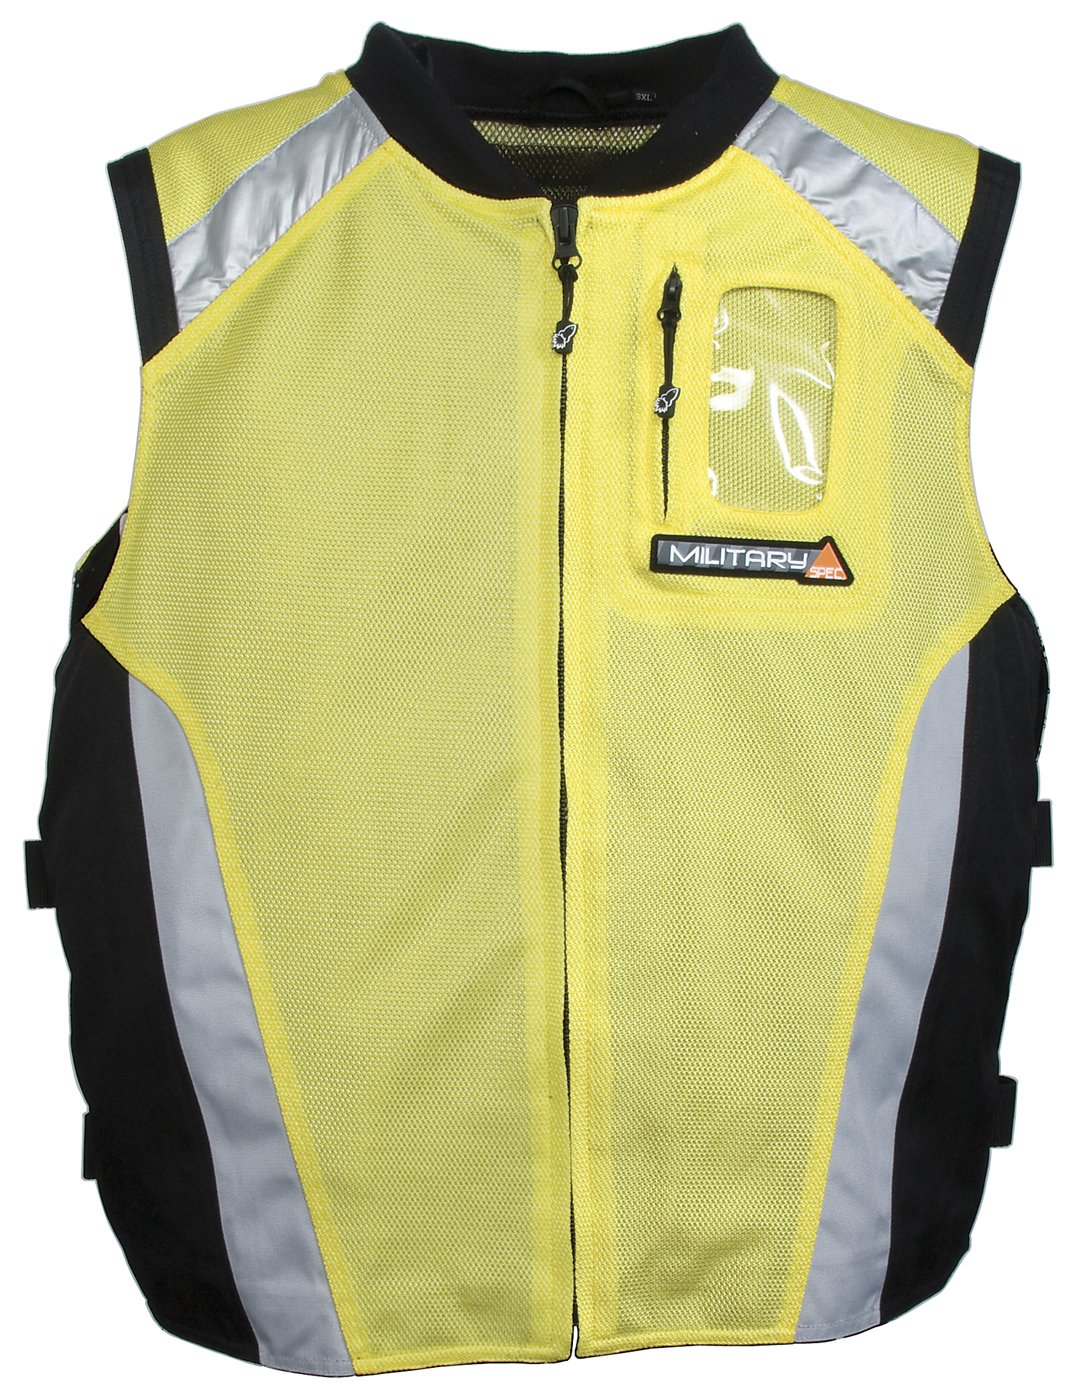 Joe Rocket Men's Military Spec Mesh Vest (Yellow, XX-Large/XXX-Large) 9052-1406